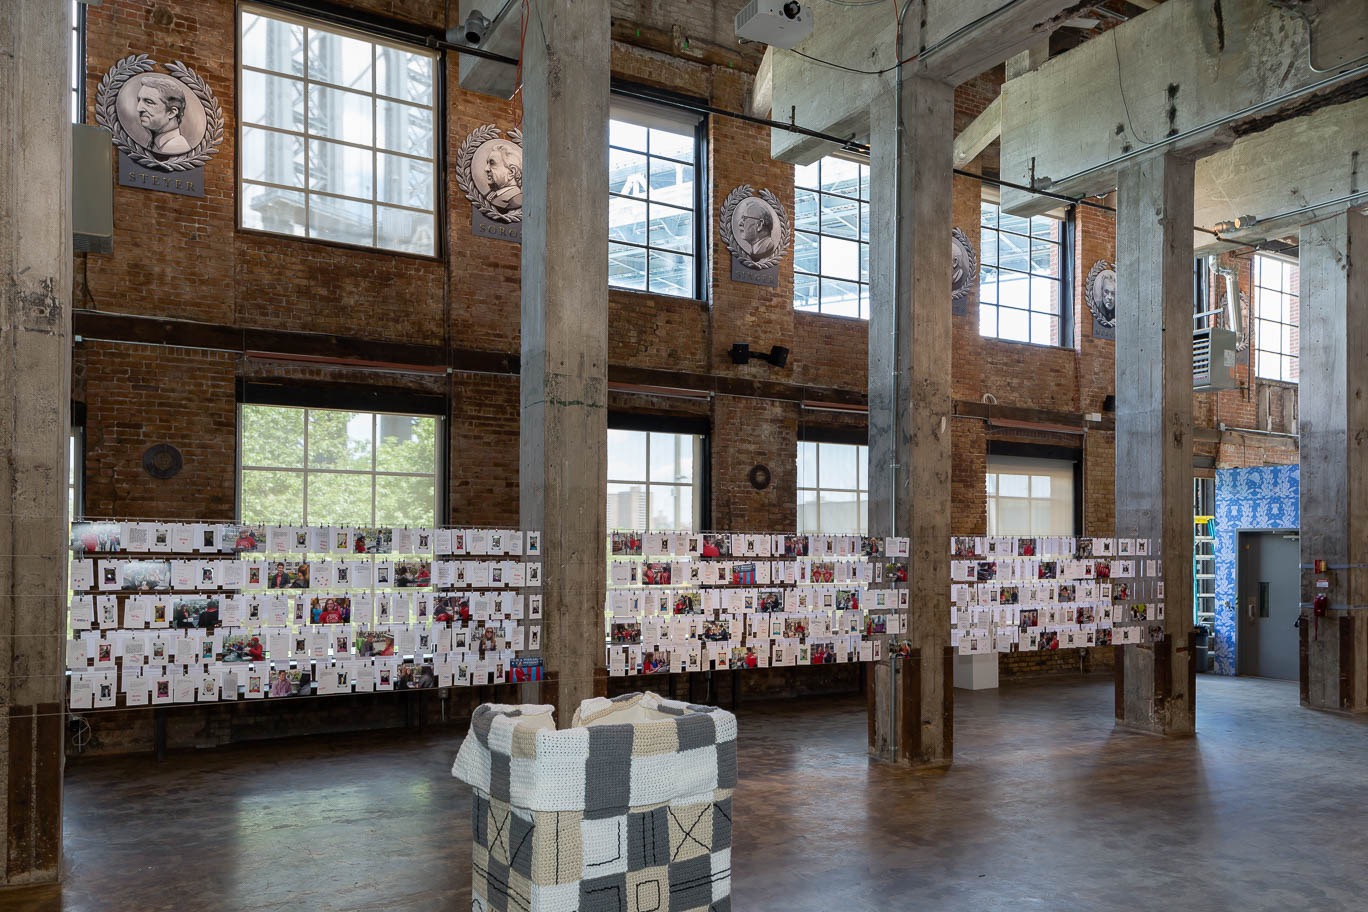 """Installation view, with Sheryl Oring's, """"I Wish to Say"""" (2016) suspended between pillars on the left."""